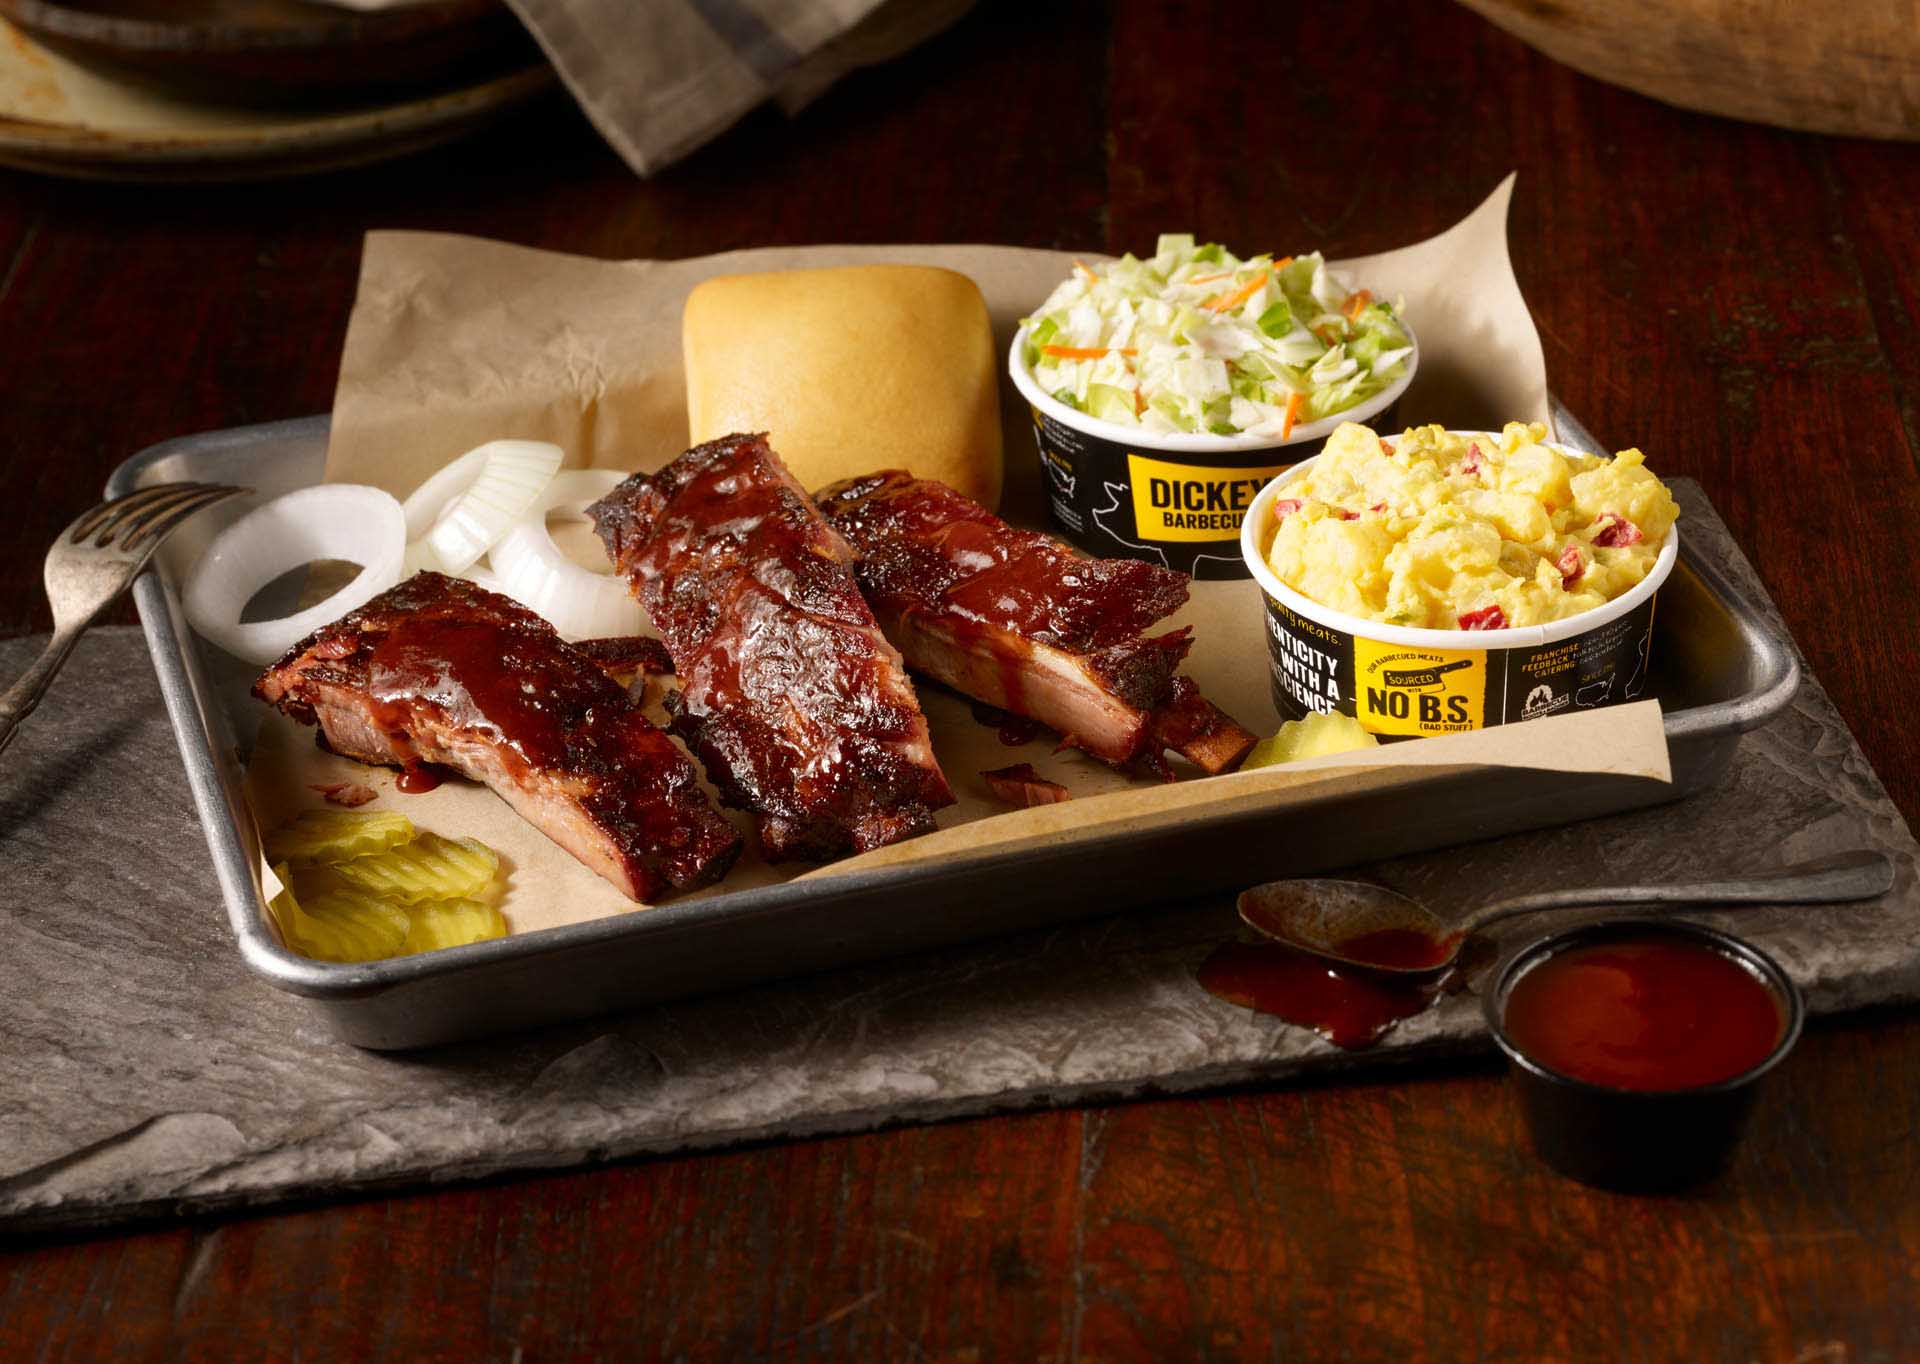 QSR: Dickey's Offering All You Can Eat Ribs for $19.99